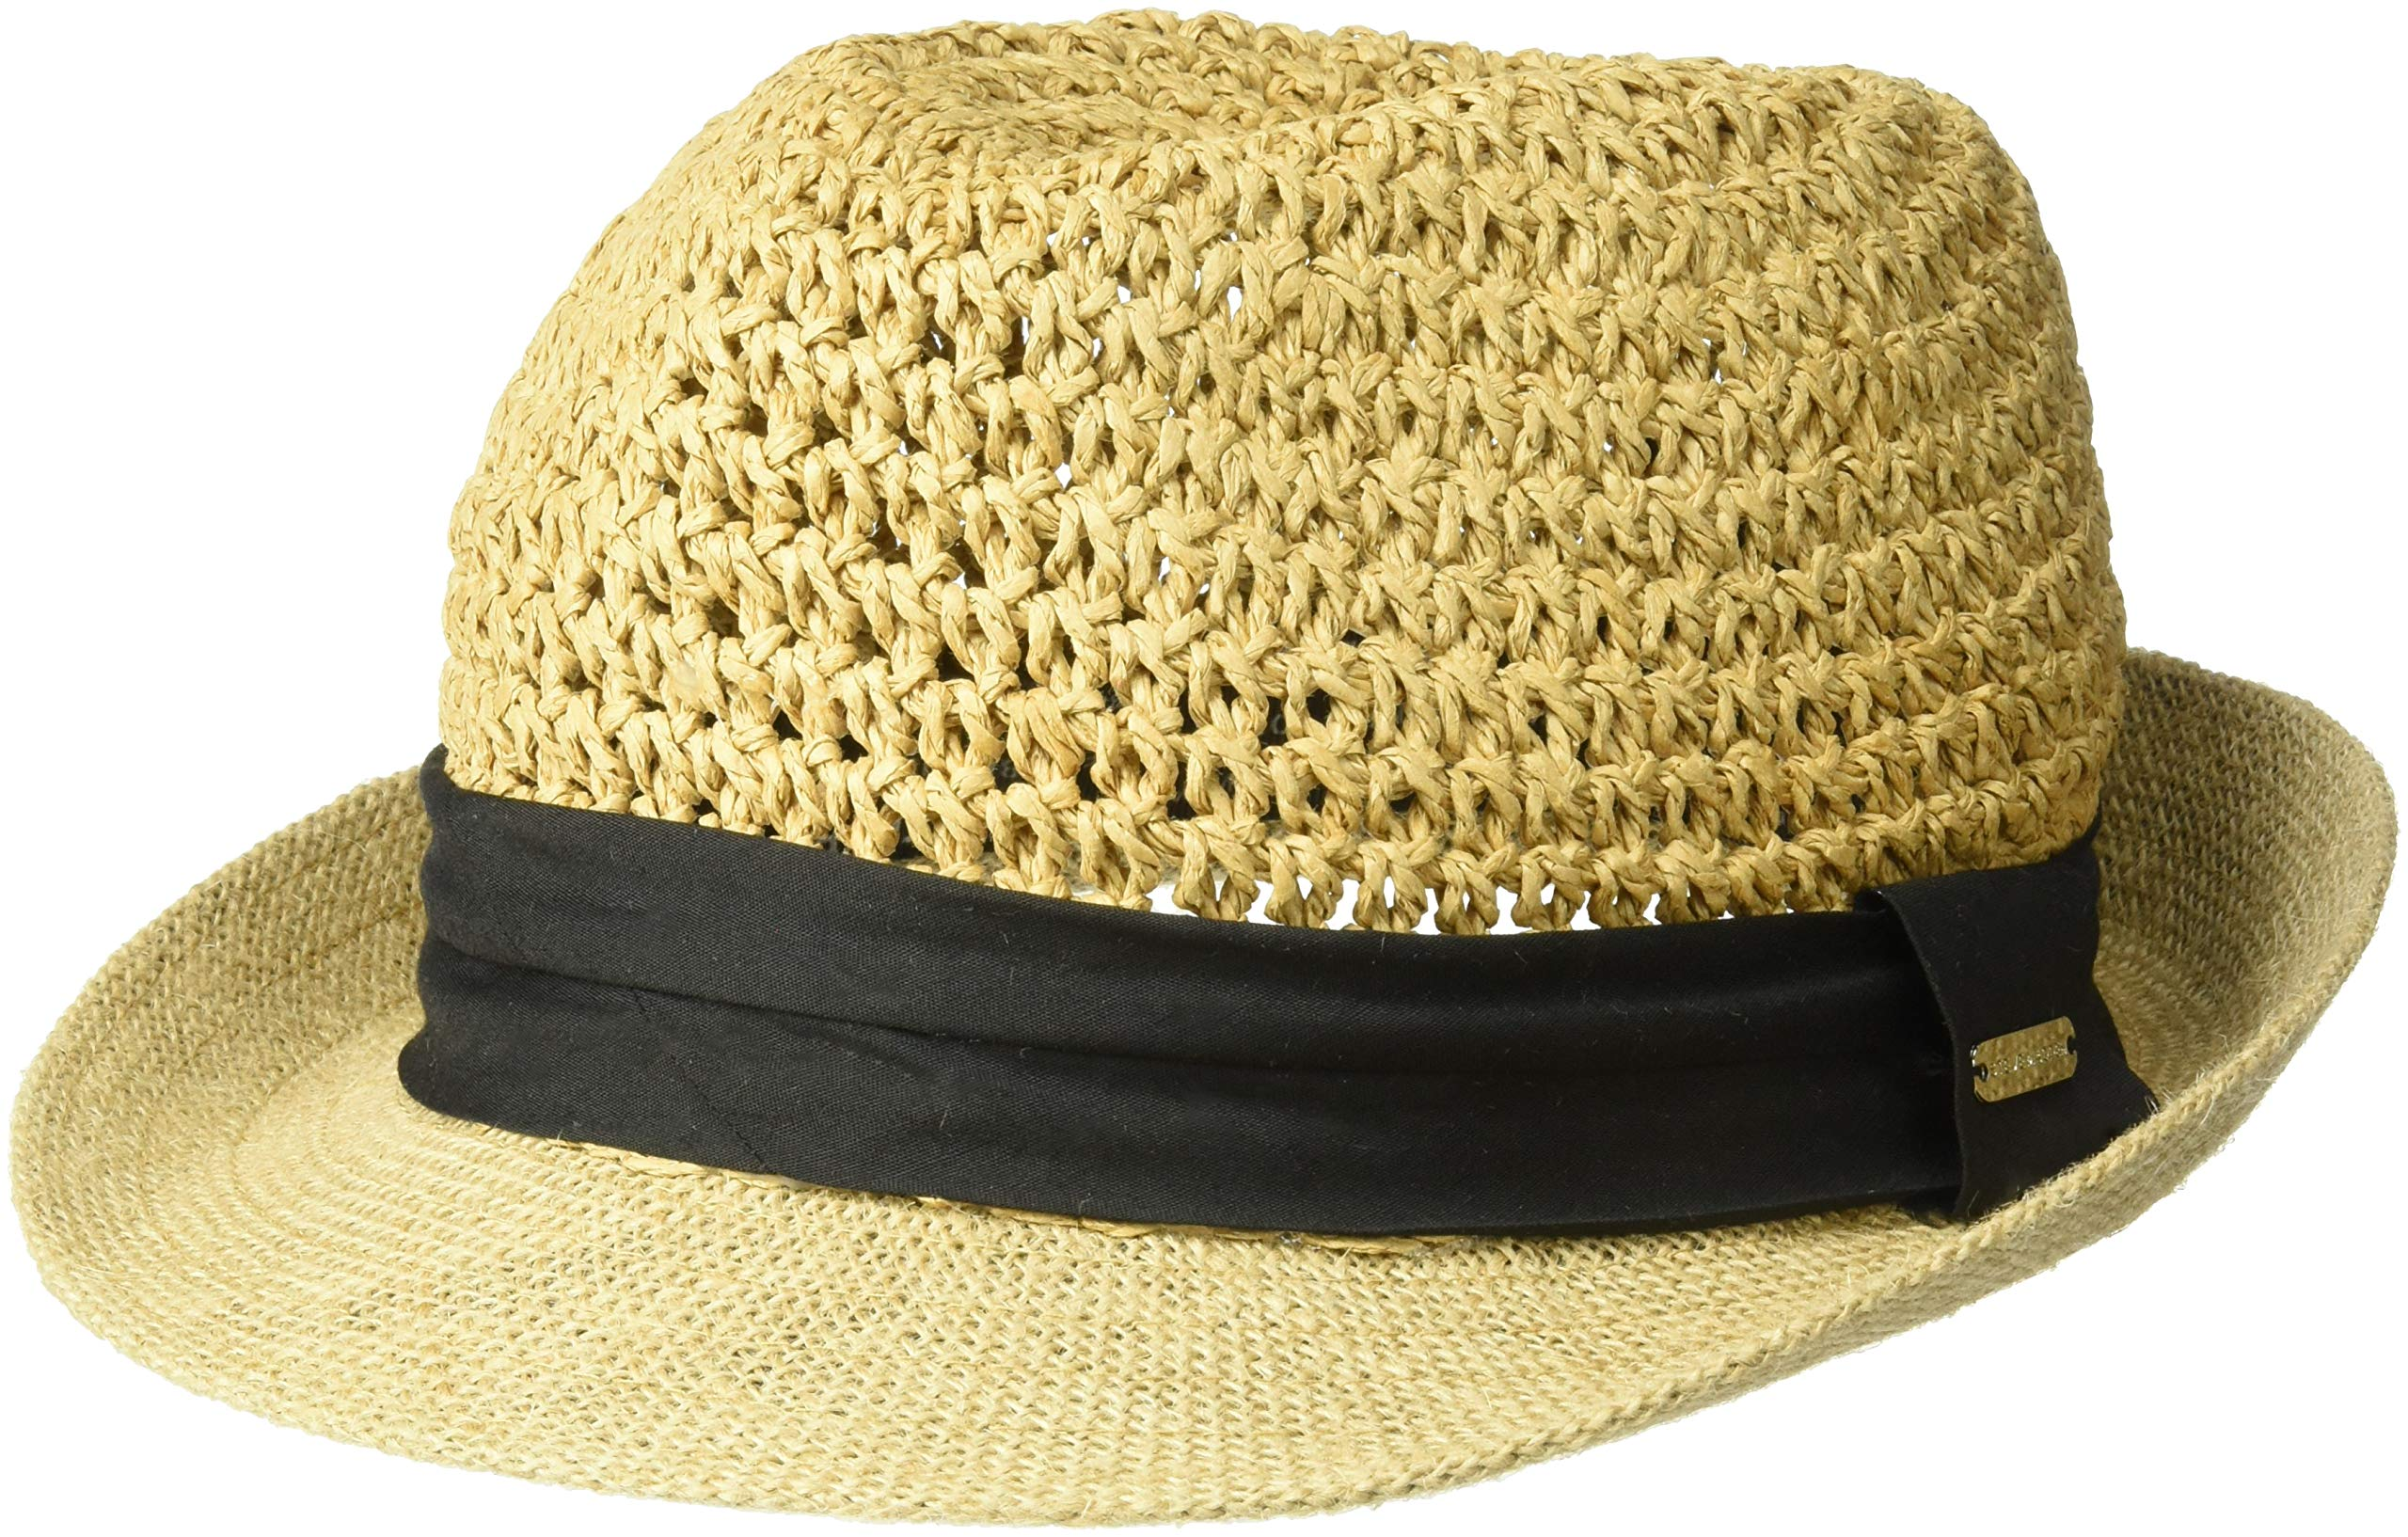 Steve Madden Women's Paper Crochet Straw Fedora with Woven Band, Black One Size